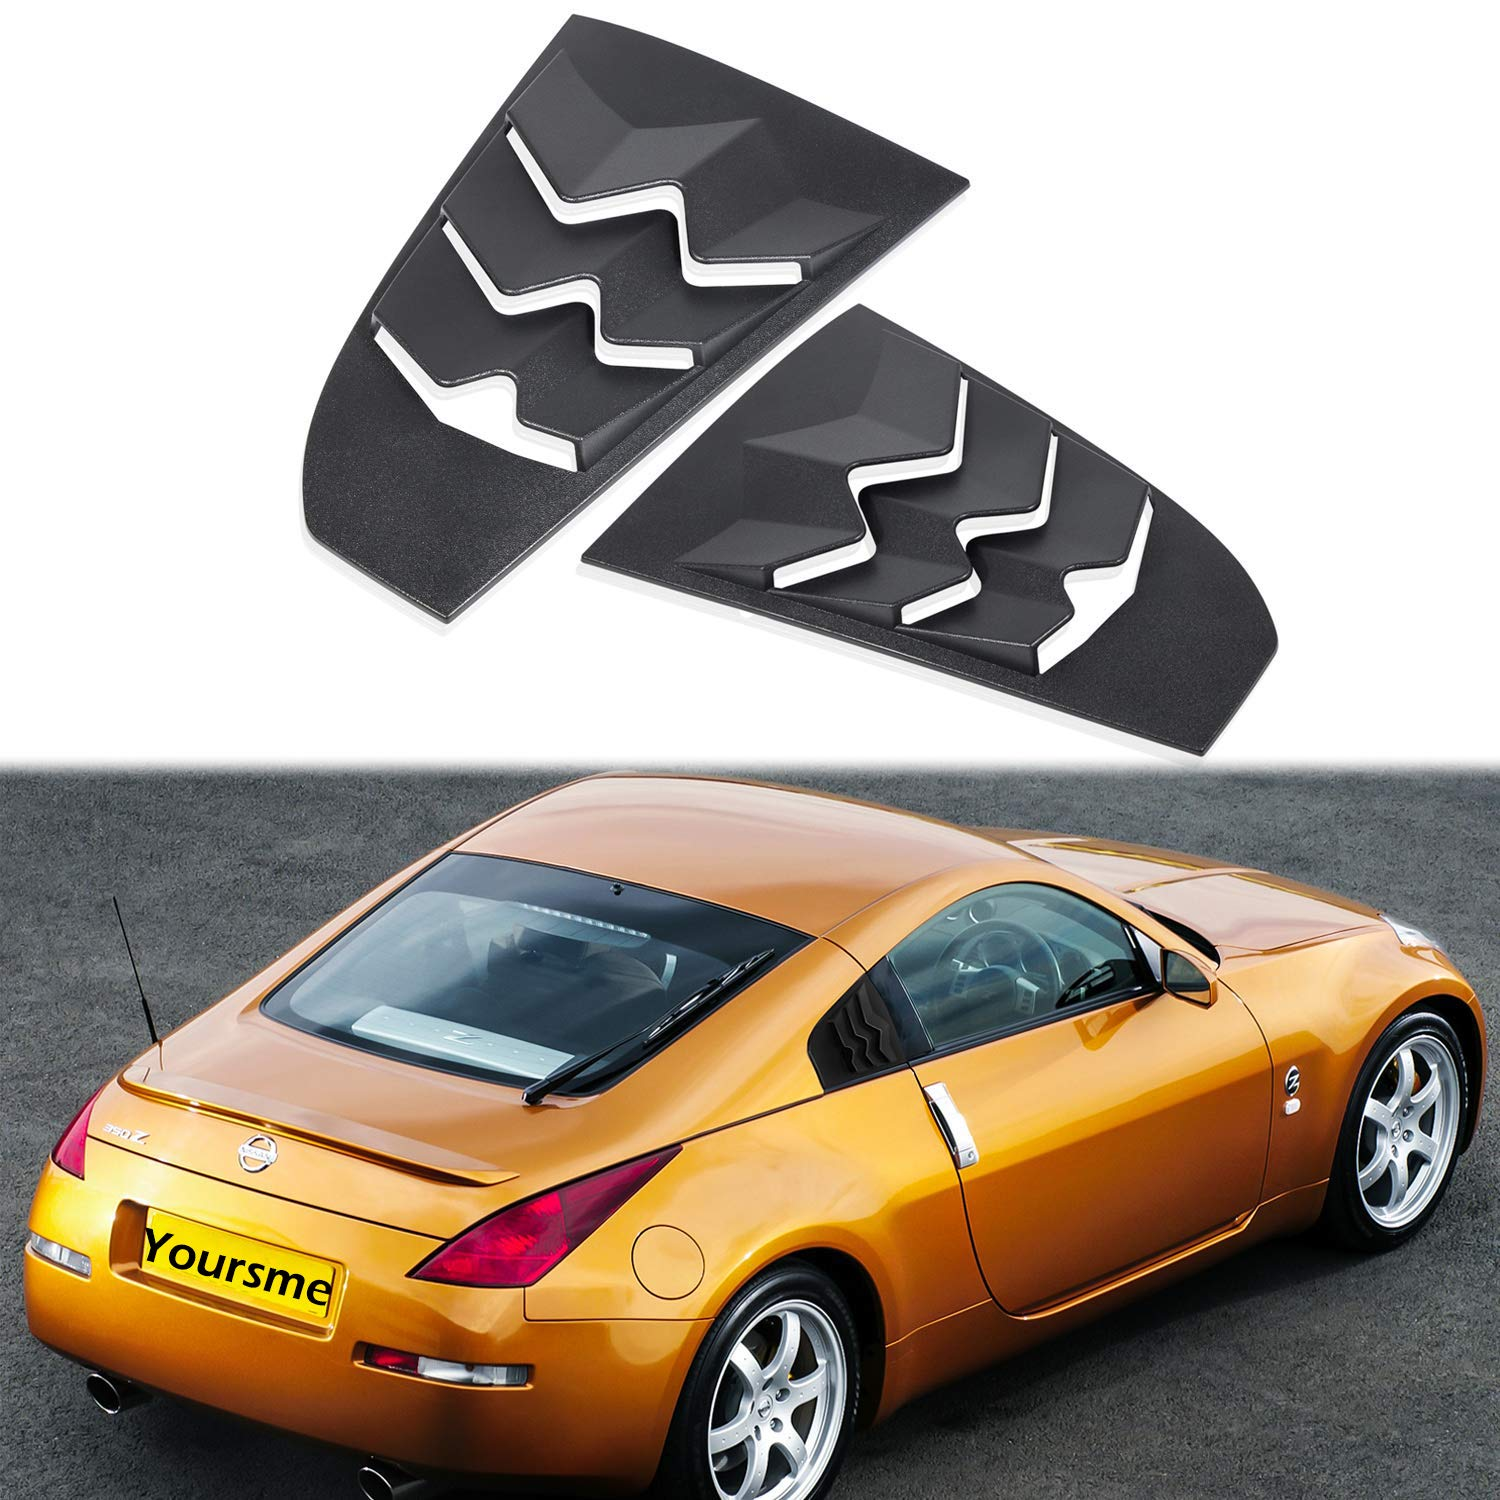 Yoursme Window Louver for 2003-2008 Nissan 350Z Rear Quarter Side Window Scoop Cover Matte Black ABS by Yoursme